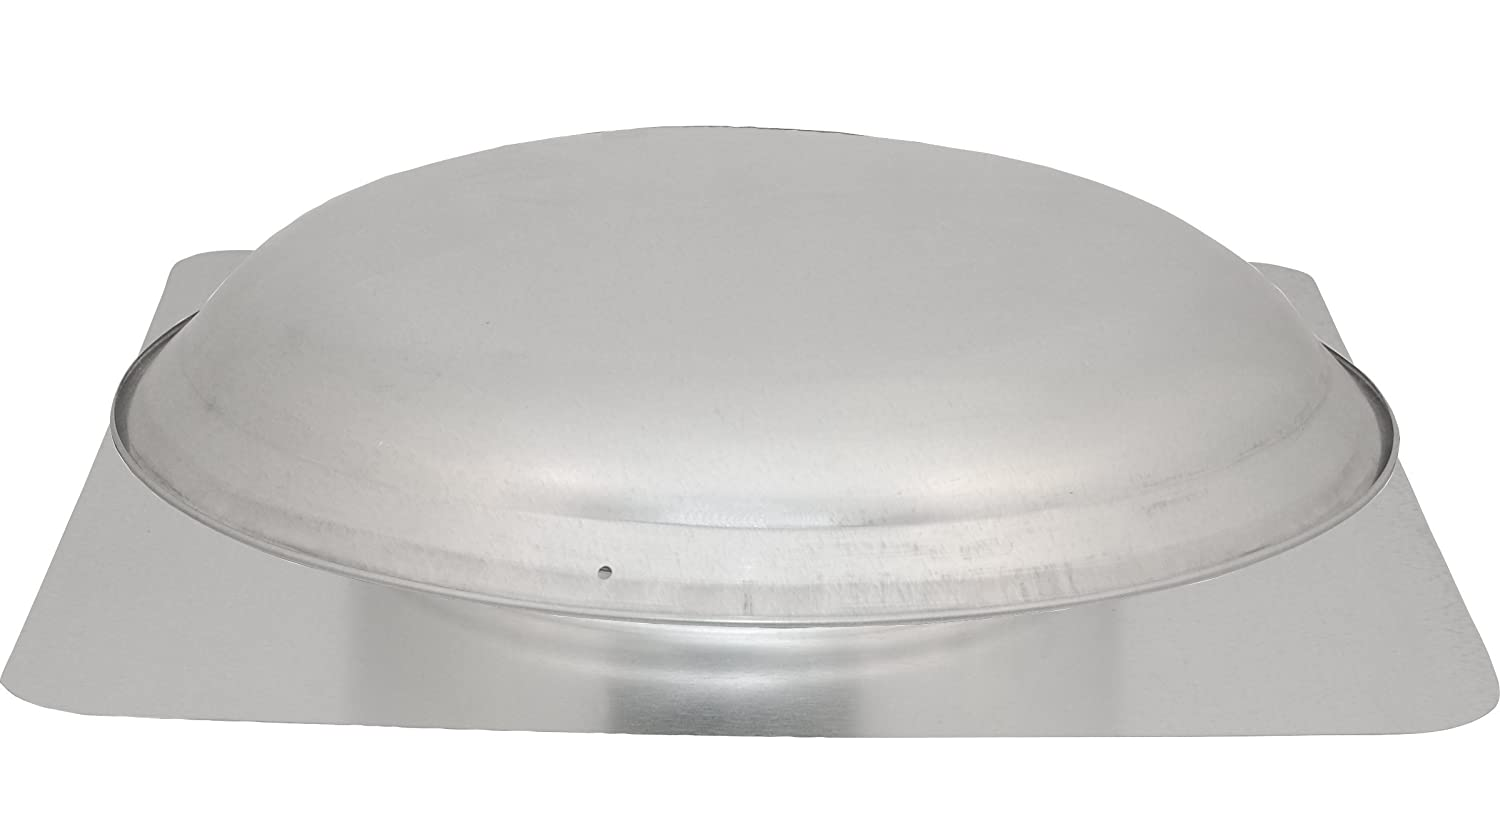 Cool Attic CX1000AM Power Attic Roof Mount Ventilator with 3.4-Amp 60-Hz Motor and Steel Flange, Galvanized Steel Dome Ventamatic